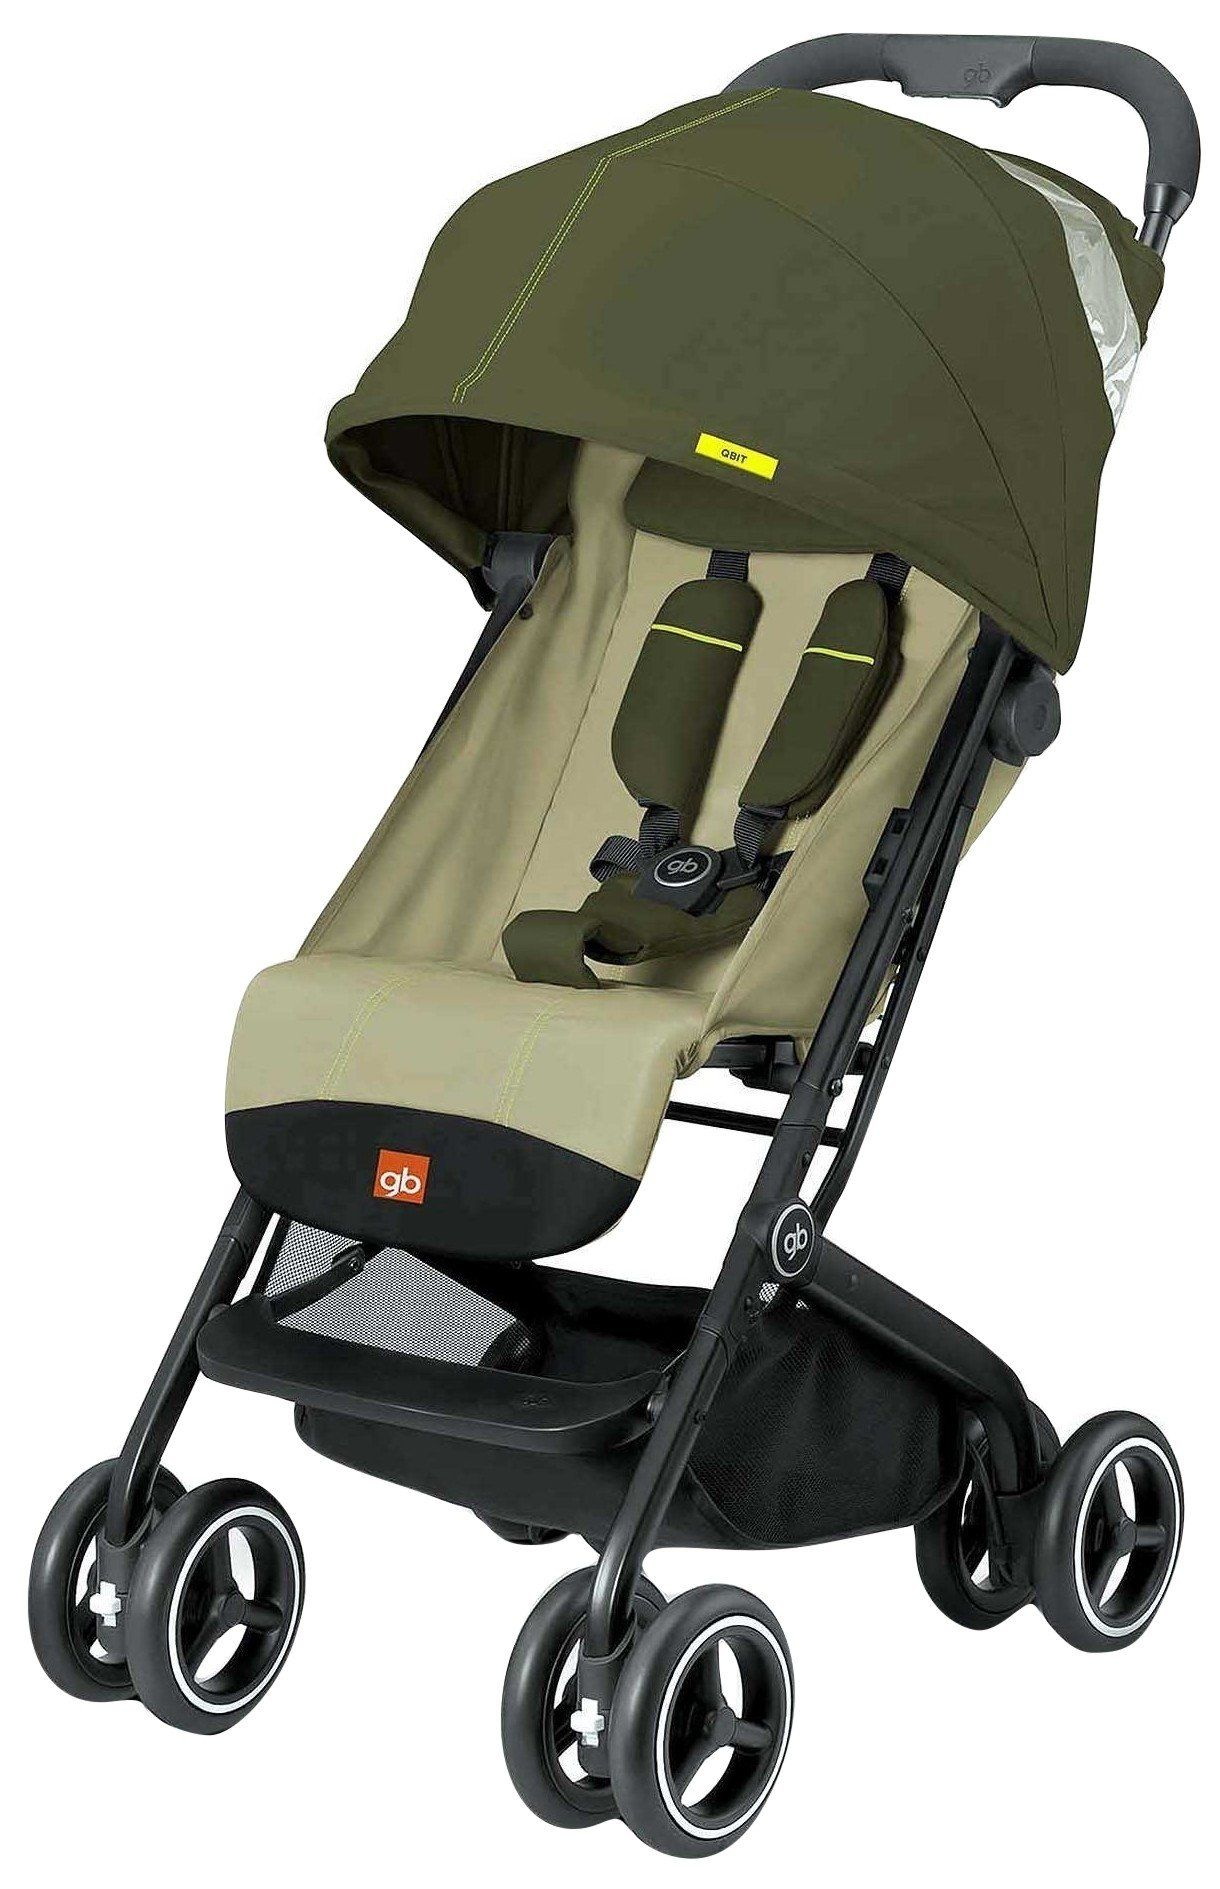 GB QBit Plus (Lizard Khaki) parents stroller baby pram